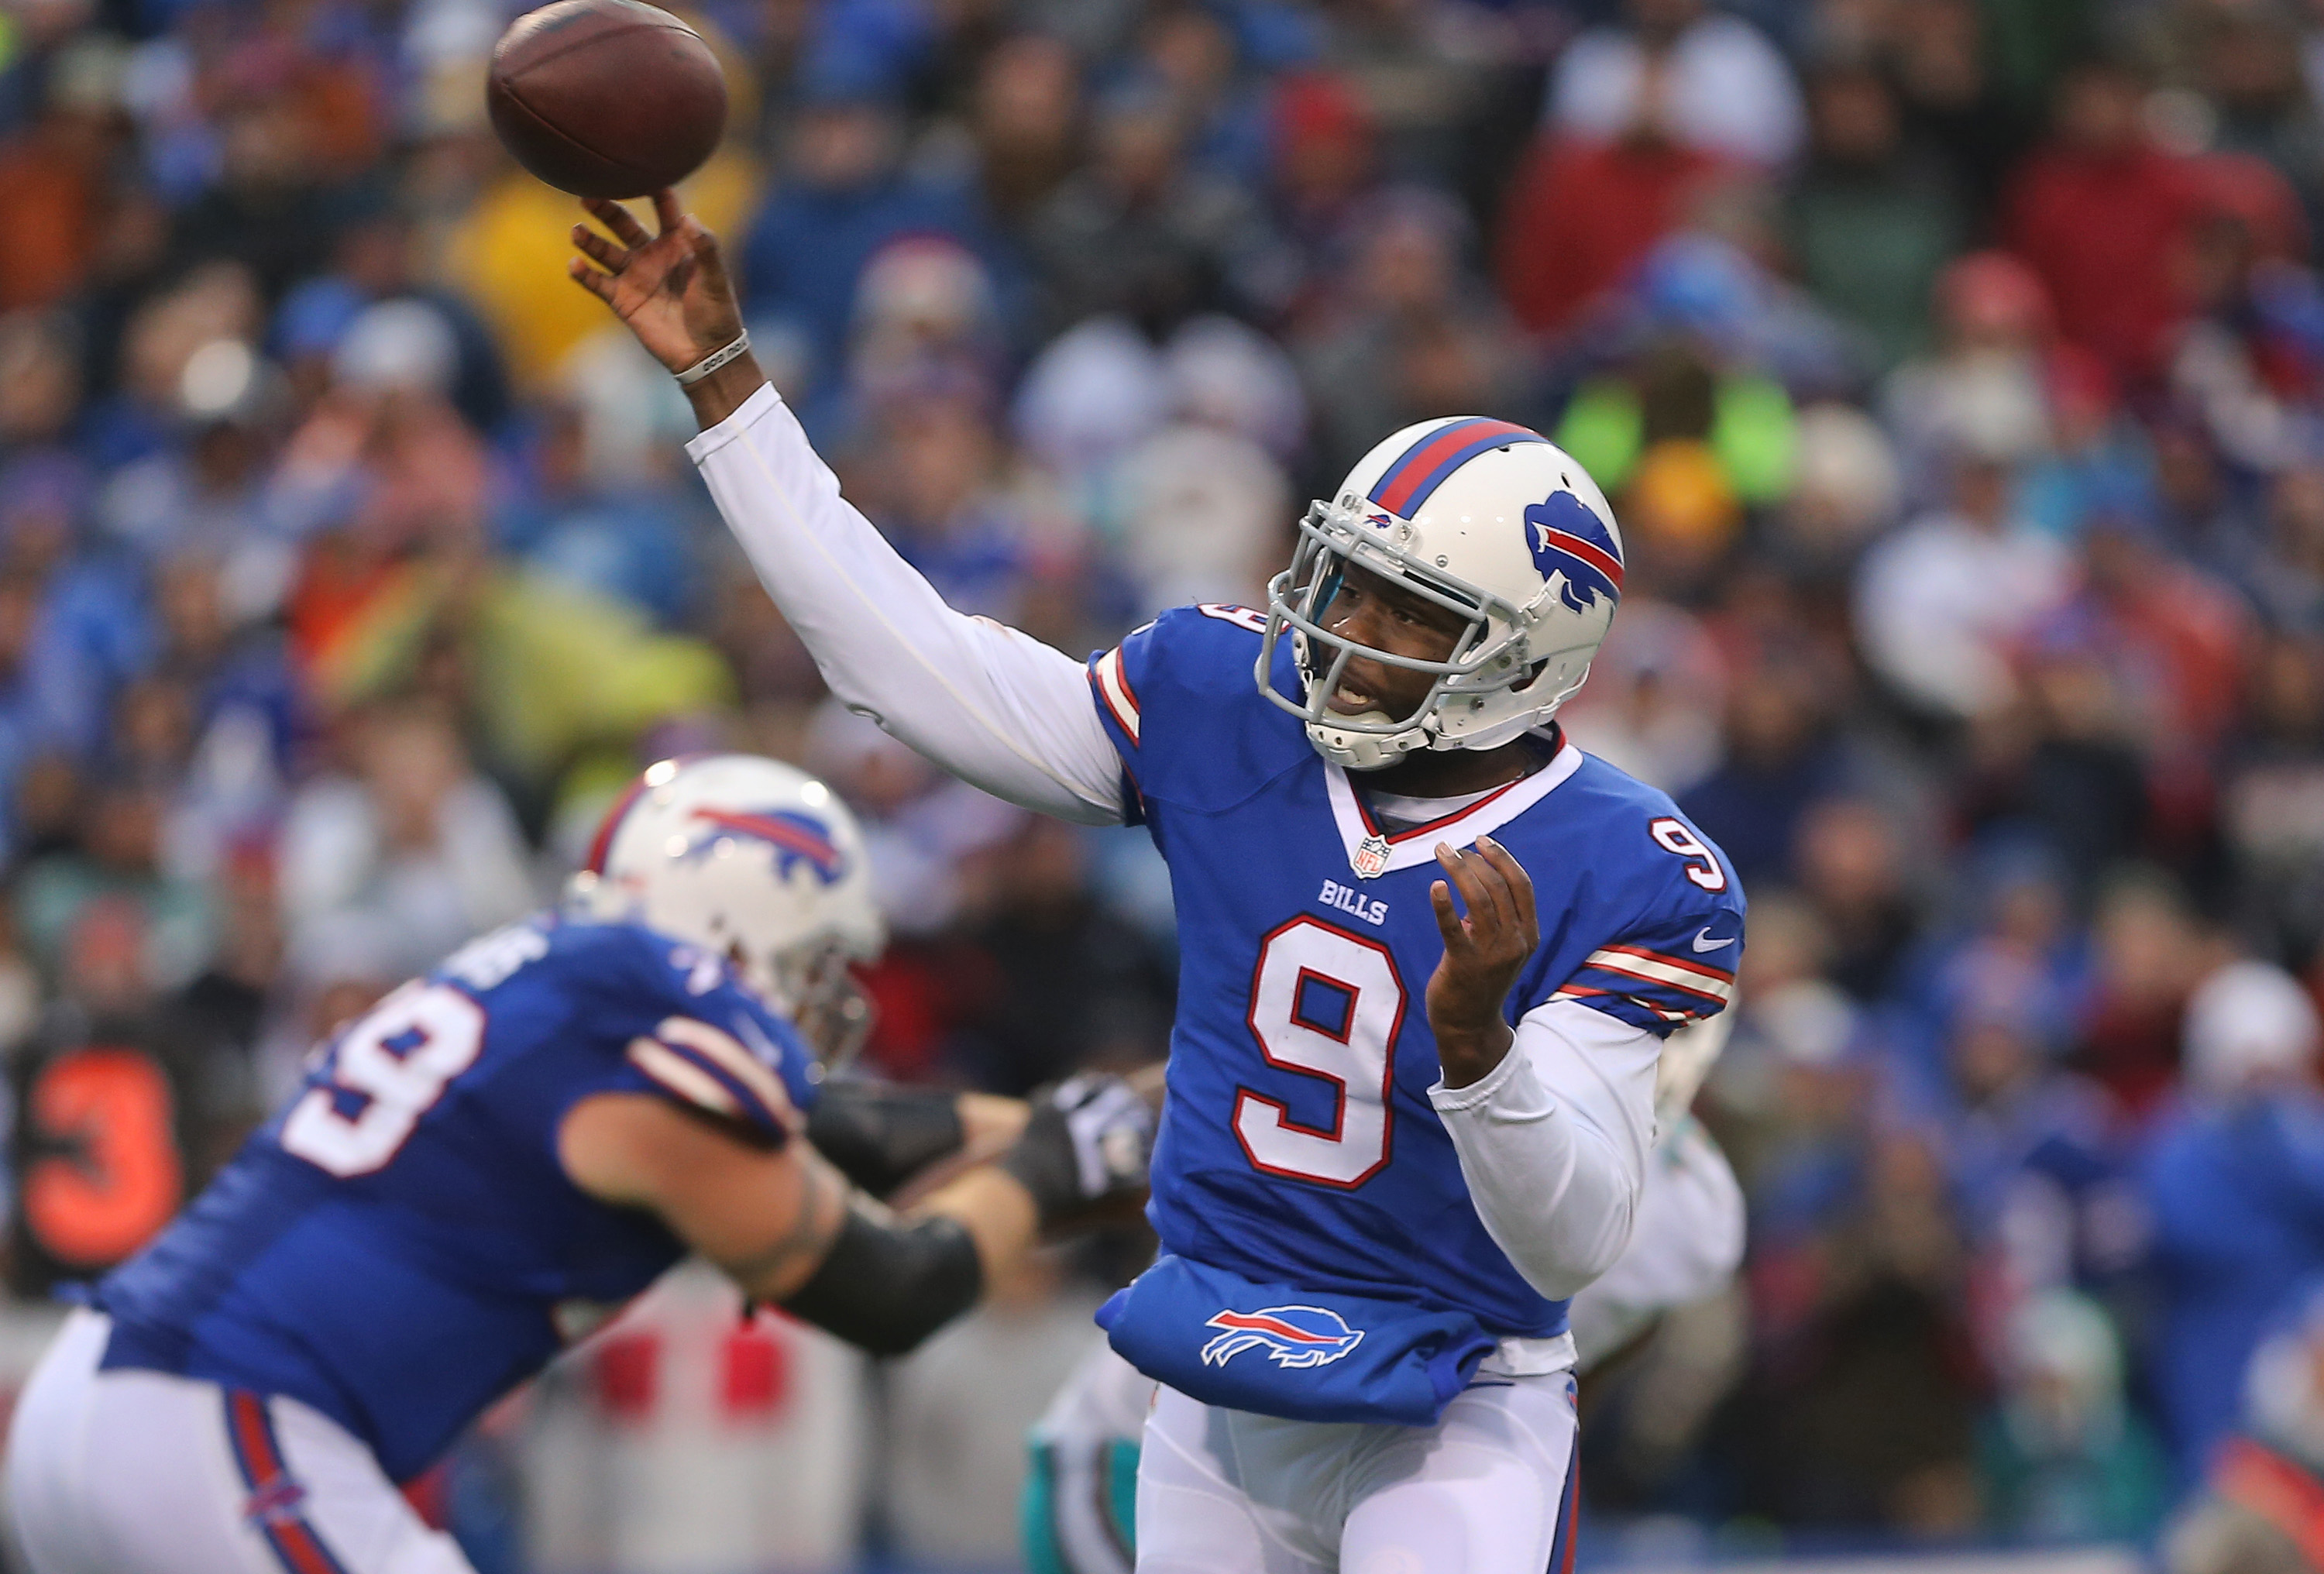 Thad Lewis is competing against Jeff Tuel for the Buffalo Bills' backup QB job.